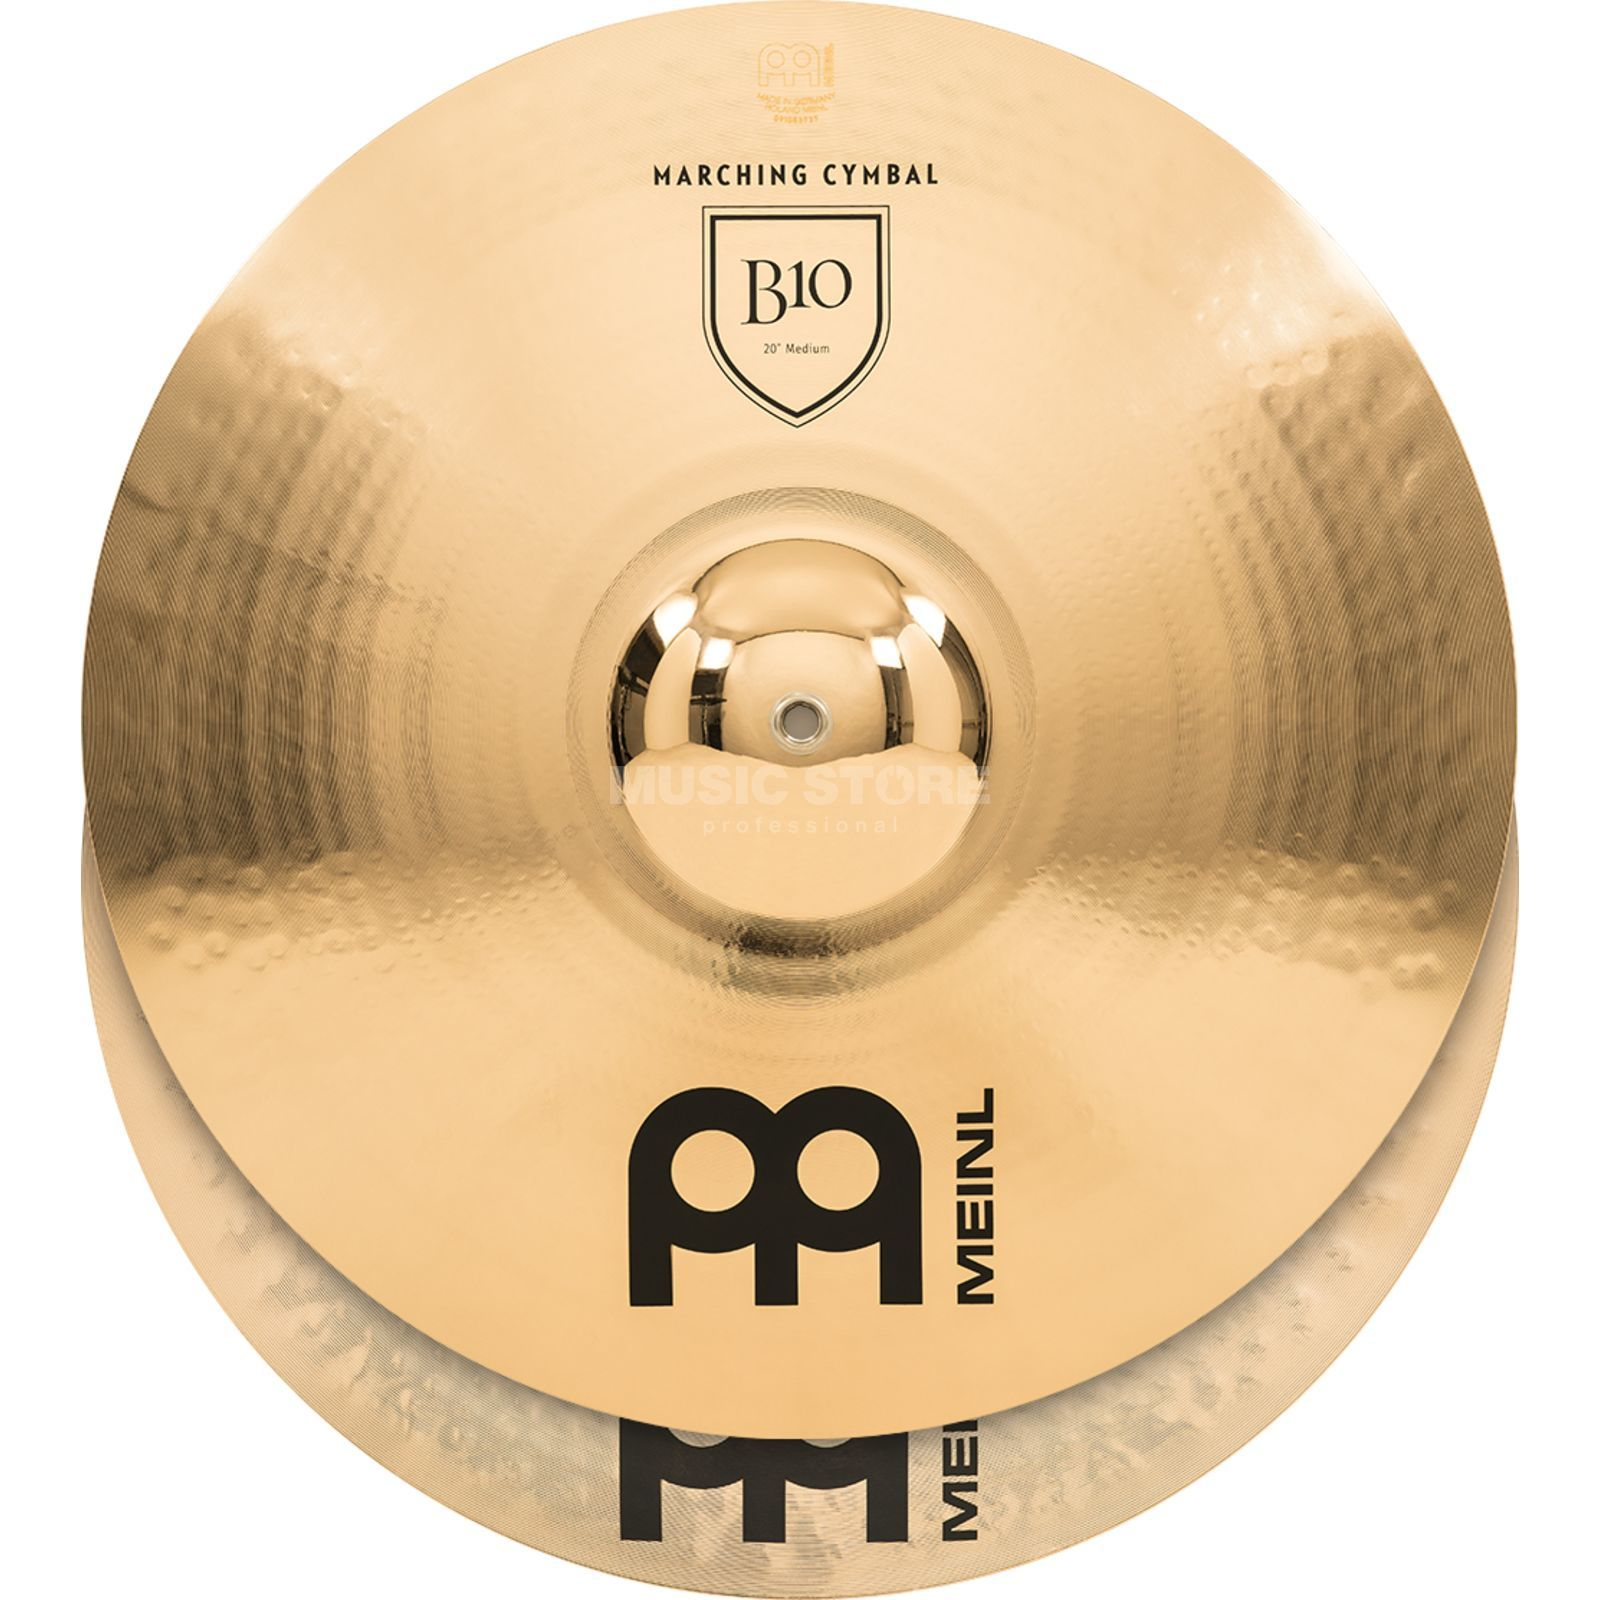 "Meinl B10 Marching Cymbals 20"", Medium, MA-B10-20M Produktbillede"